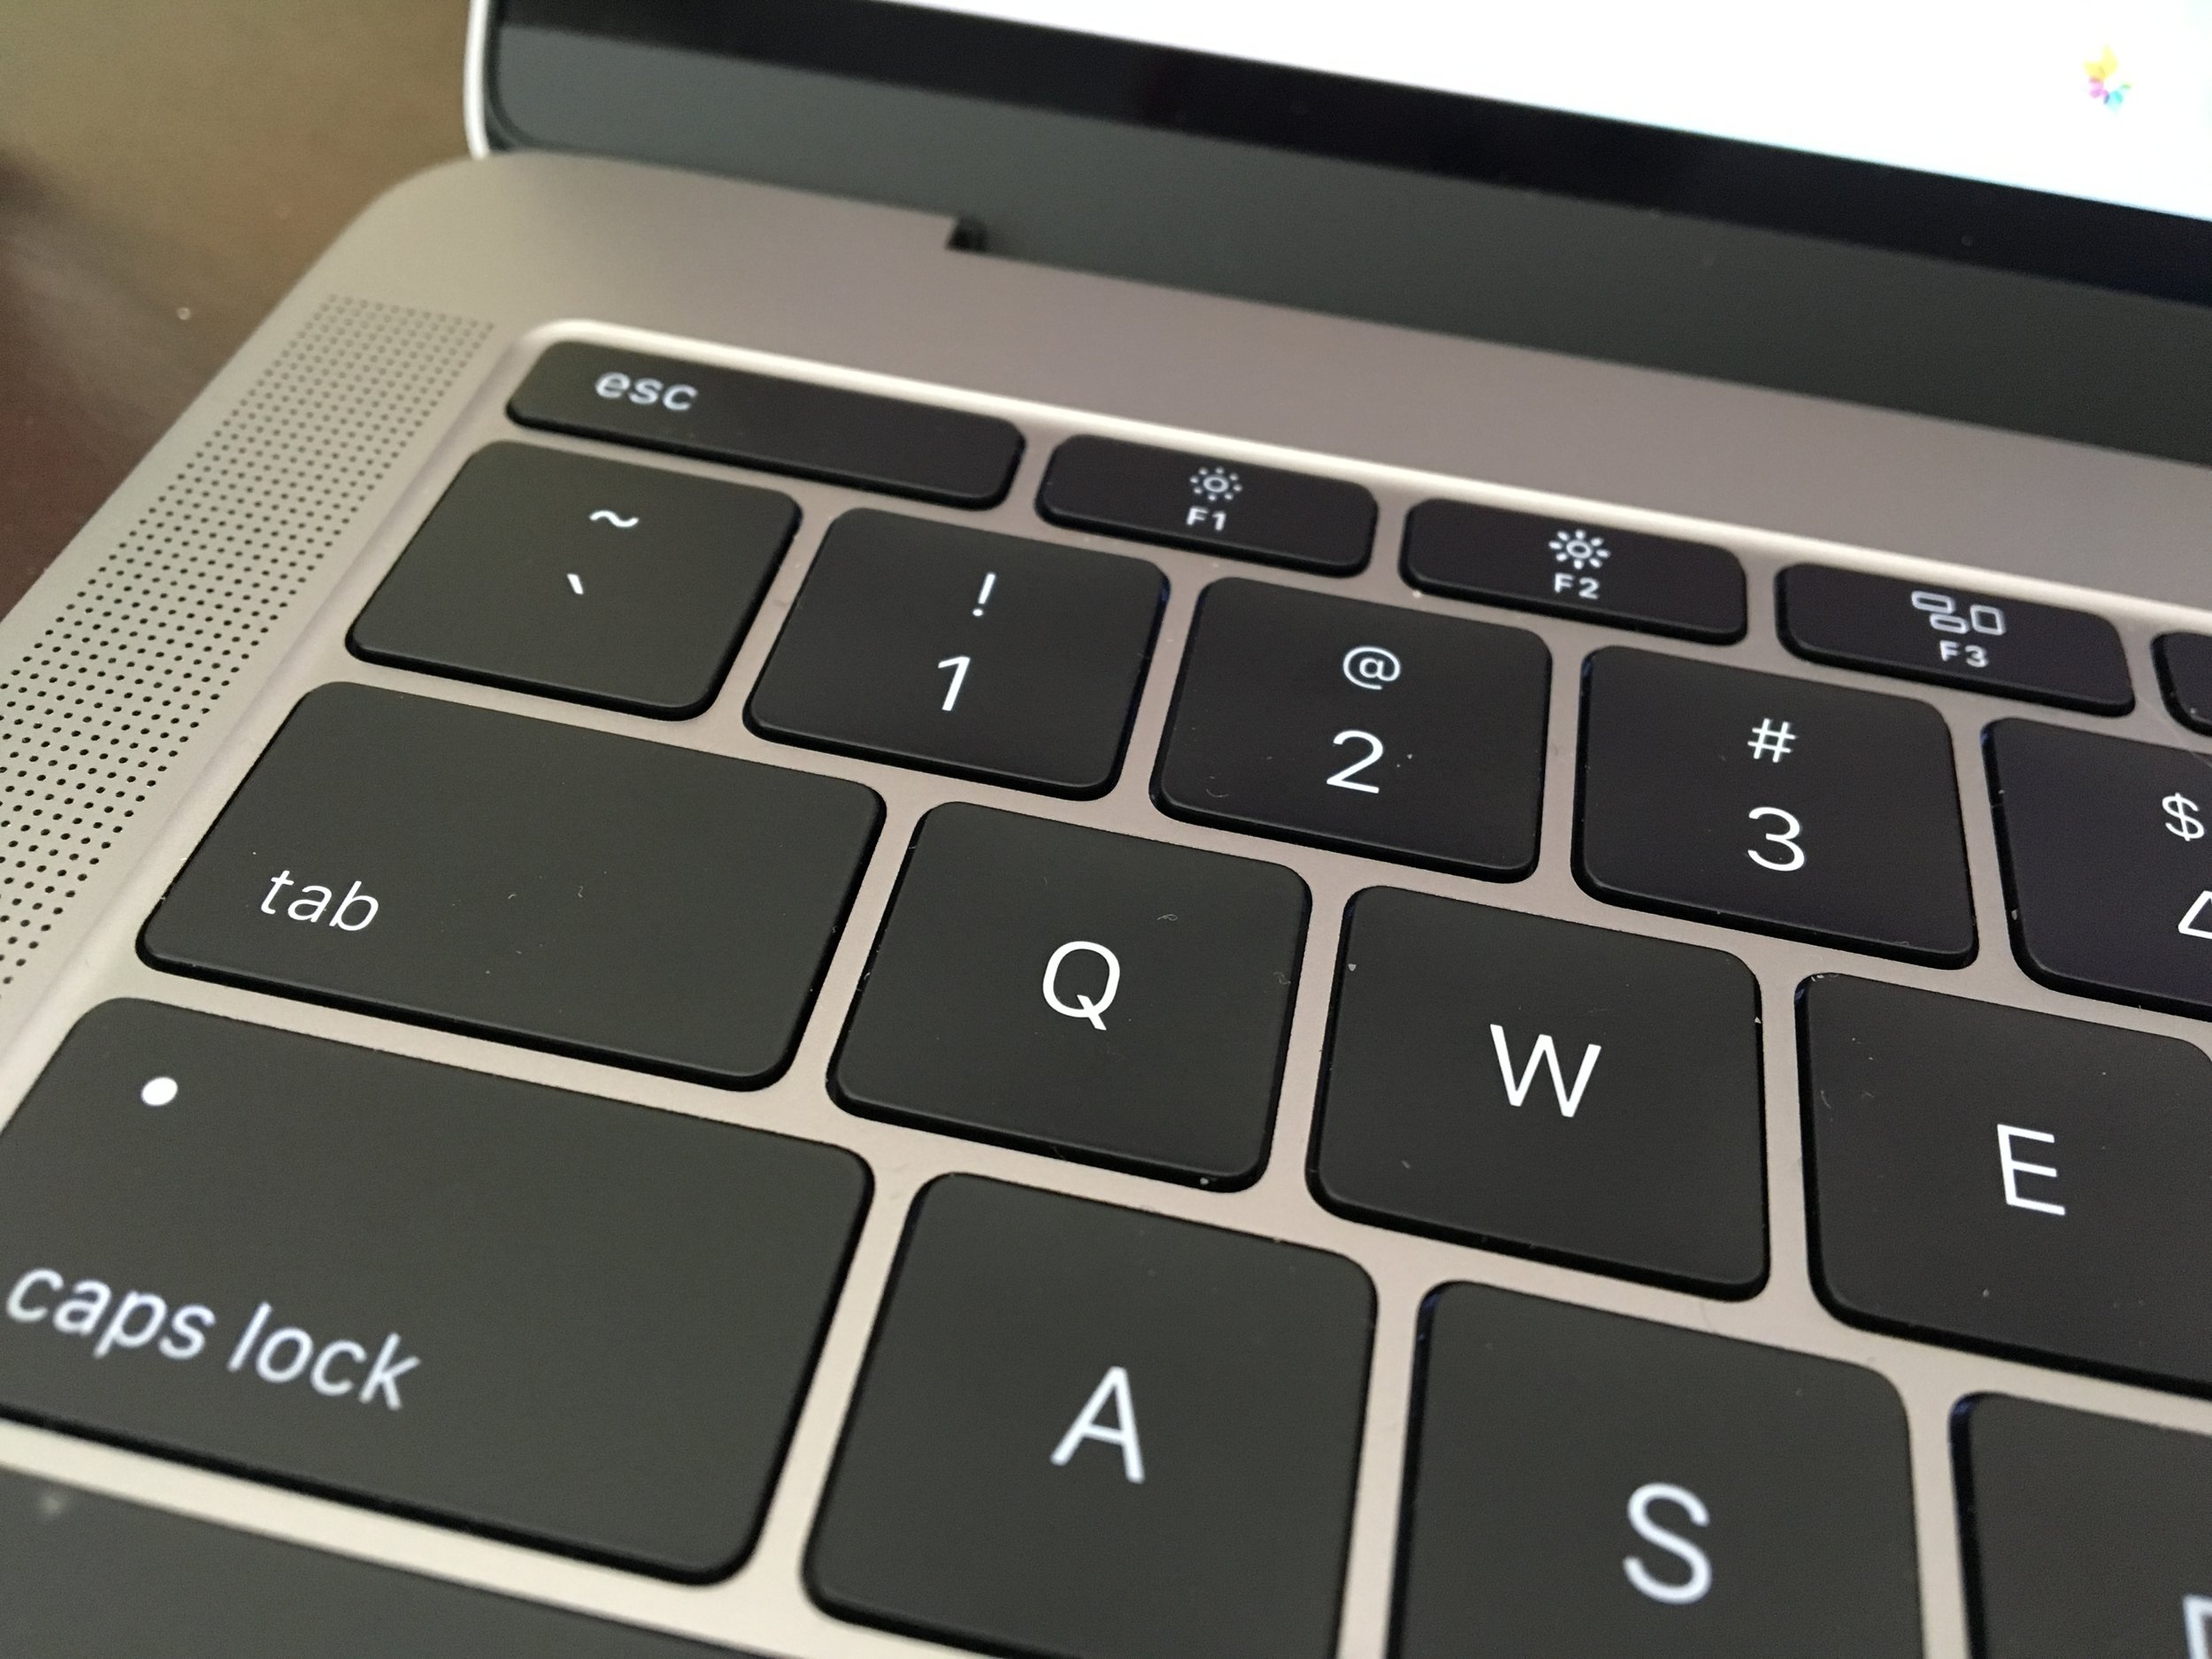 0.5 mm of travel. They keys are raised enough that you can find the right keys comfortably with touch typing, however.